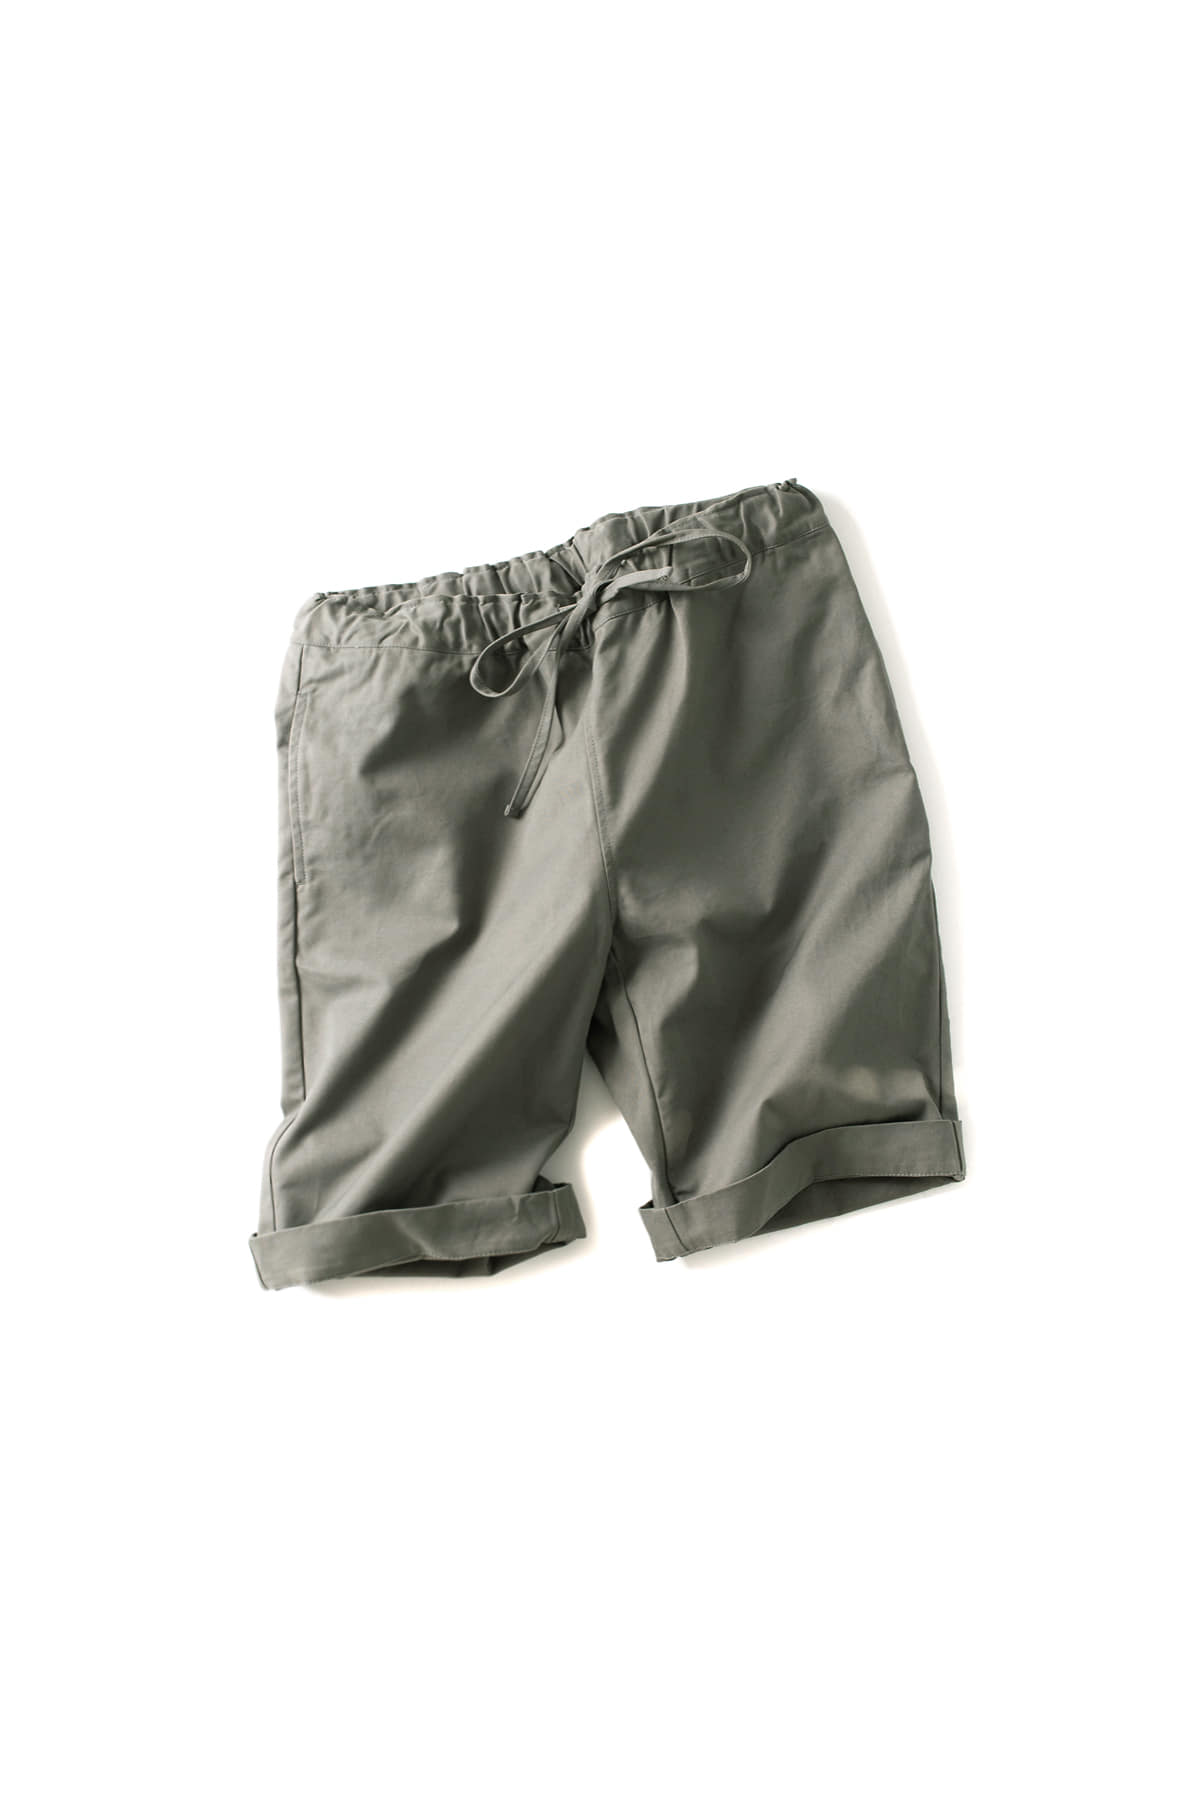 RINEN : Short Easy Pants 44809 (Charcoal)